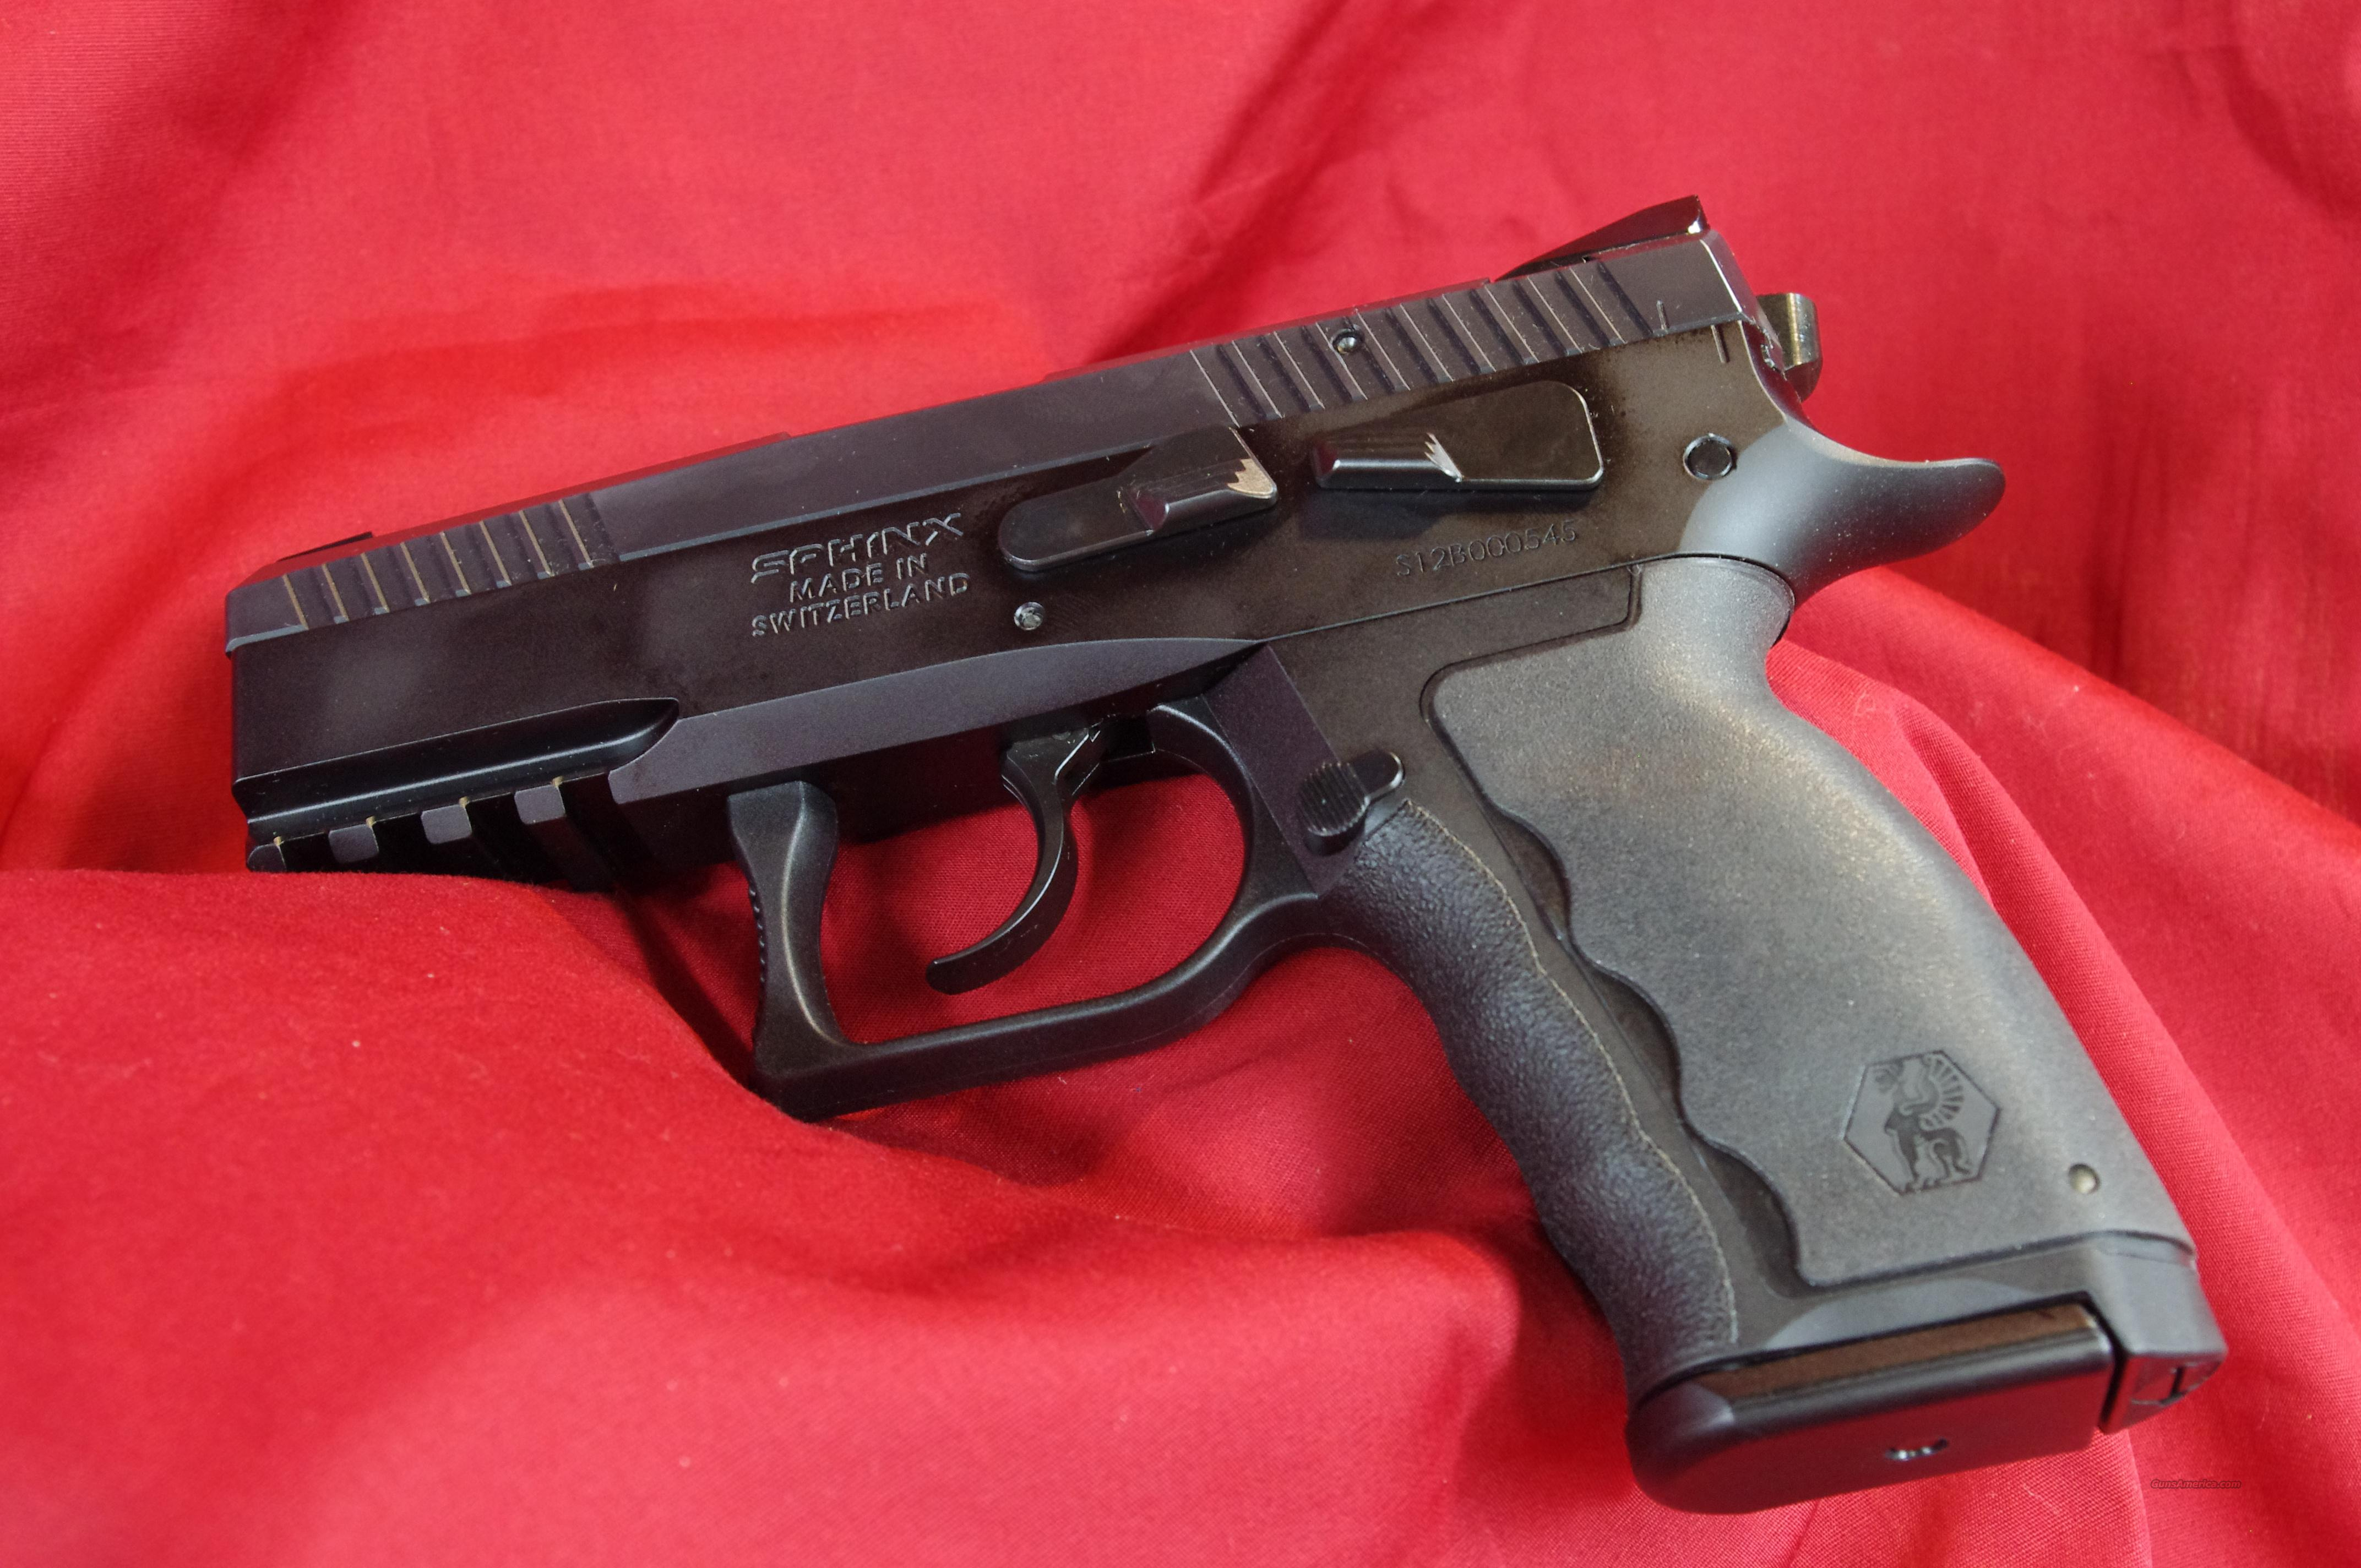 KRISS USA SPHINX in 9MM!!!